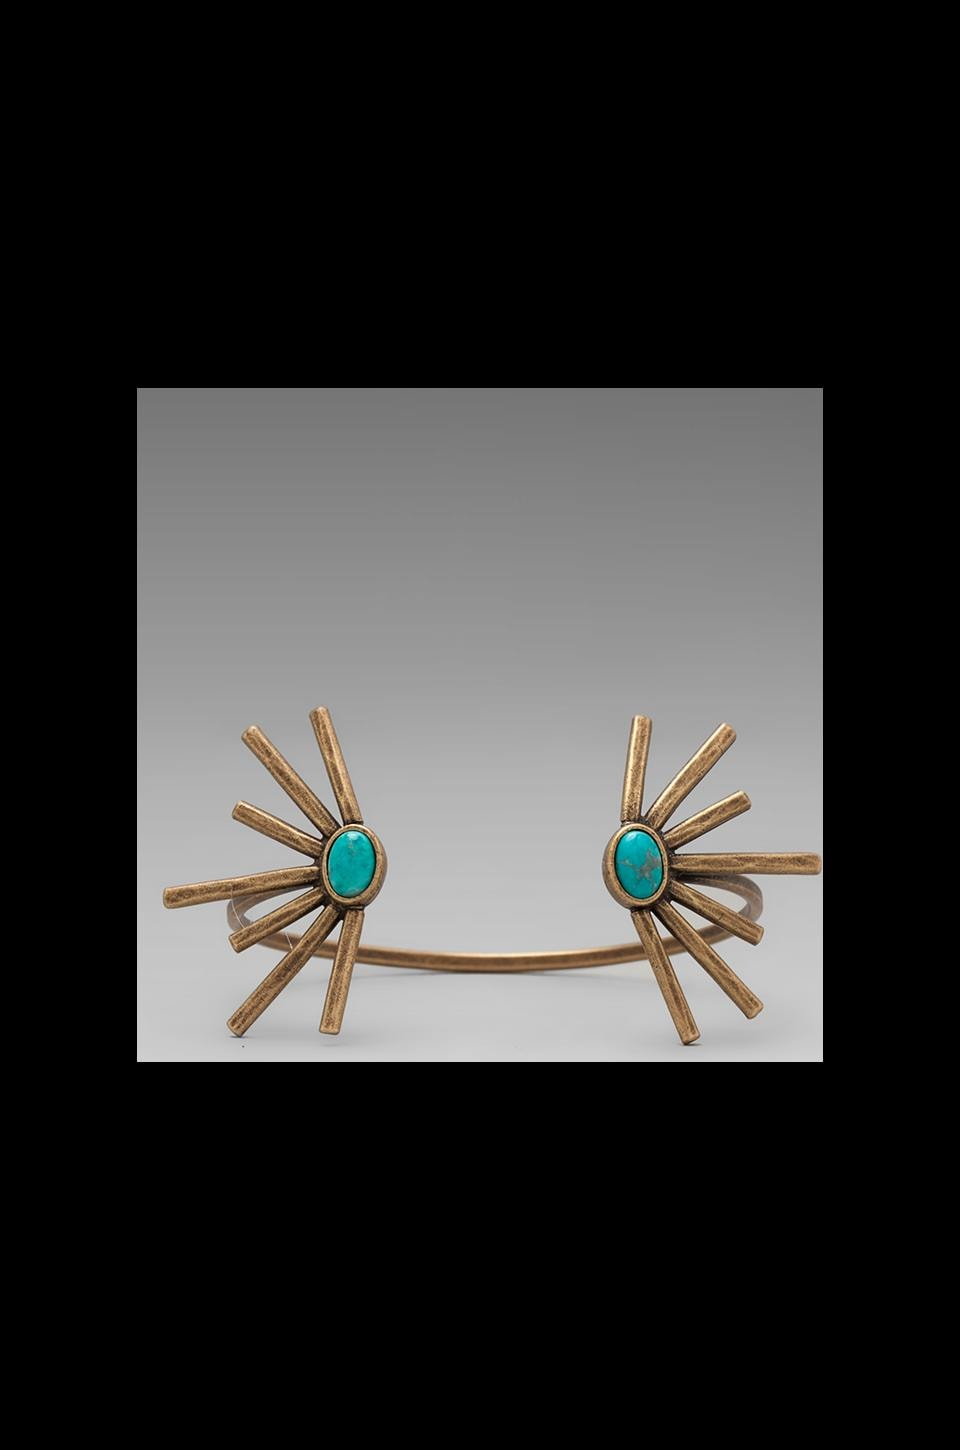 2 Bandits Sunshine Daydream Open Cuff Bracelet in Antique Brass/Turquoise